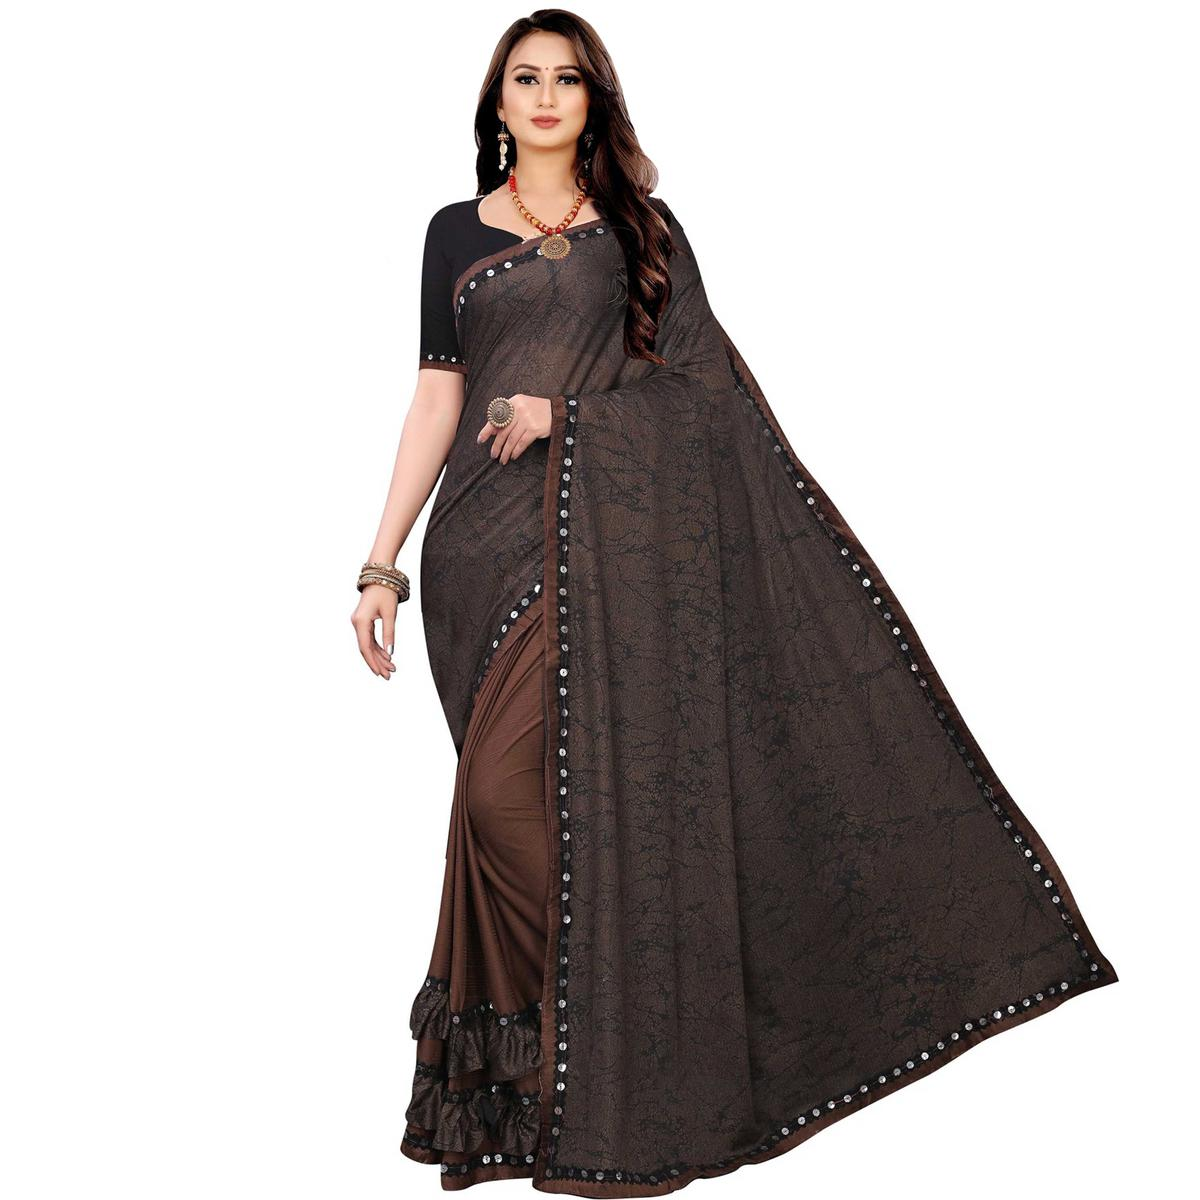 Prominent Coffee Brown Colored Party Wear Printed Lycra Blend Half & Half Saree